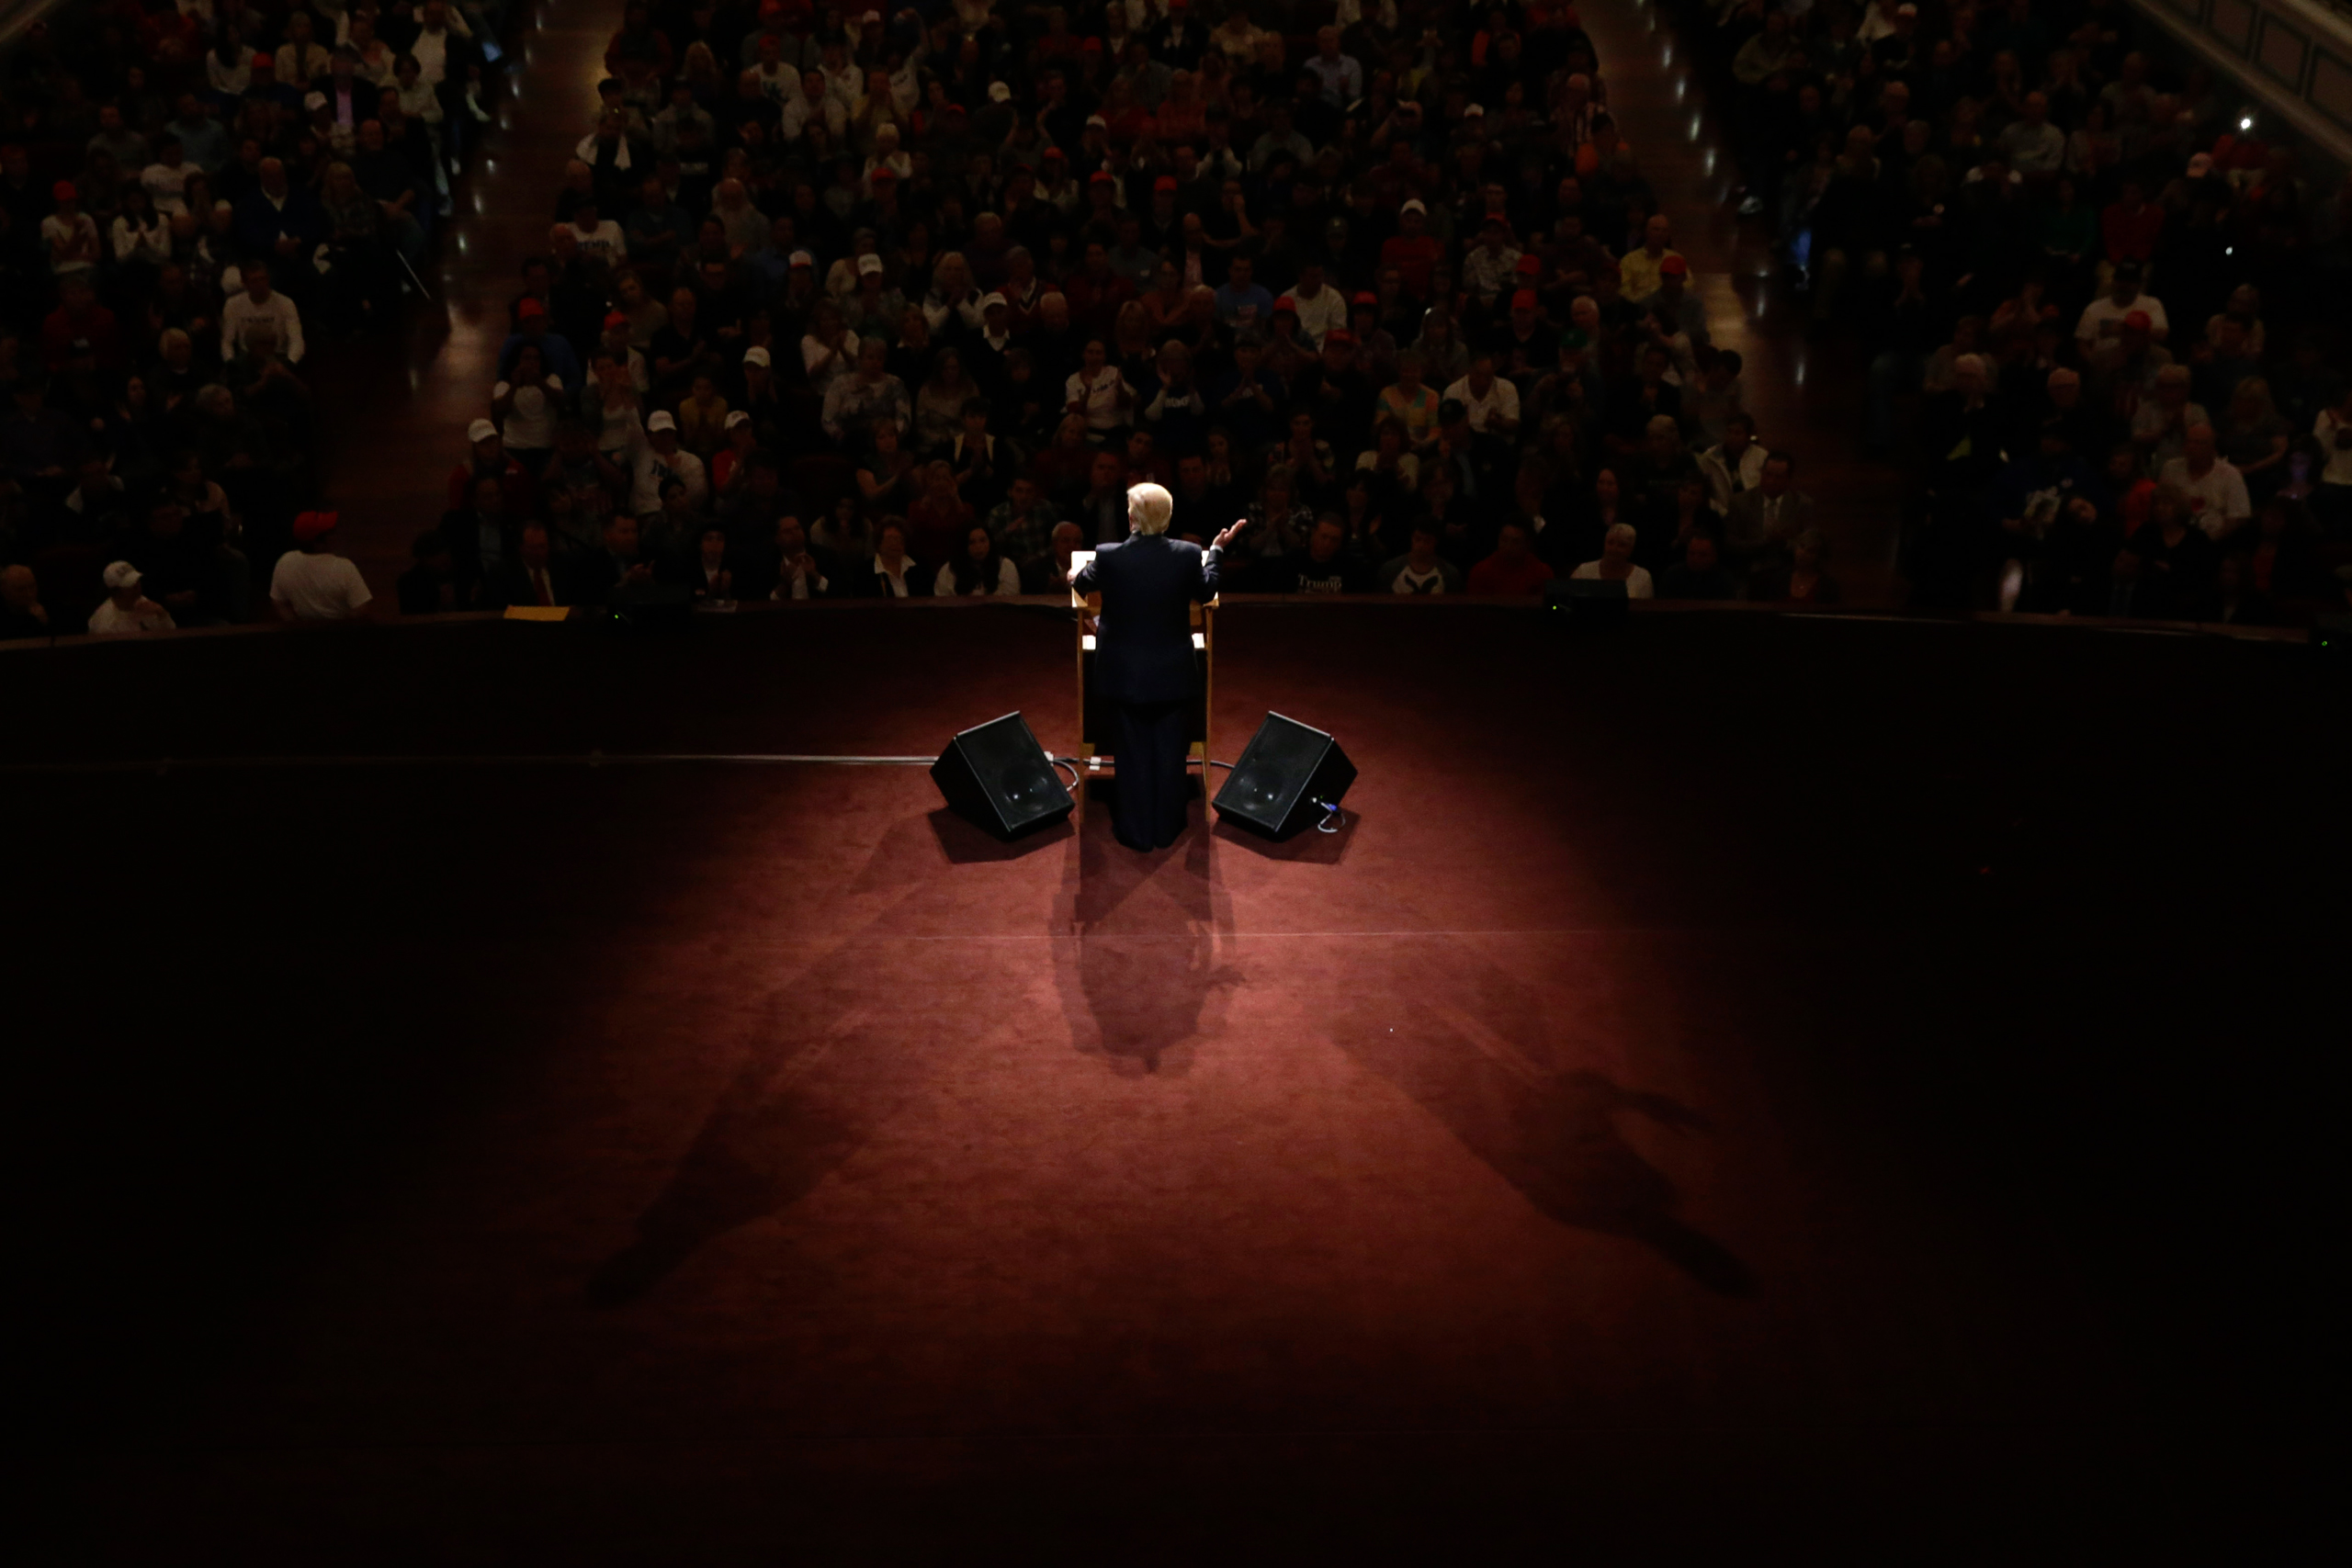 Republican presidential candidate Donald Trump speaks during a rally at The Palladium in Carmel, Ind., on May 2, 2016.